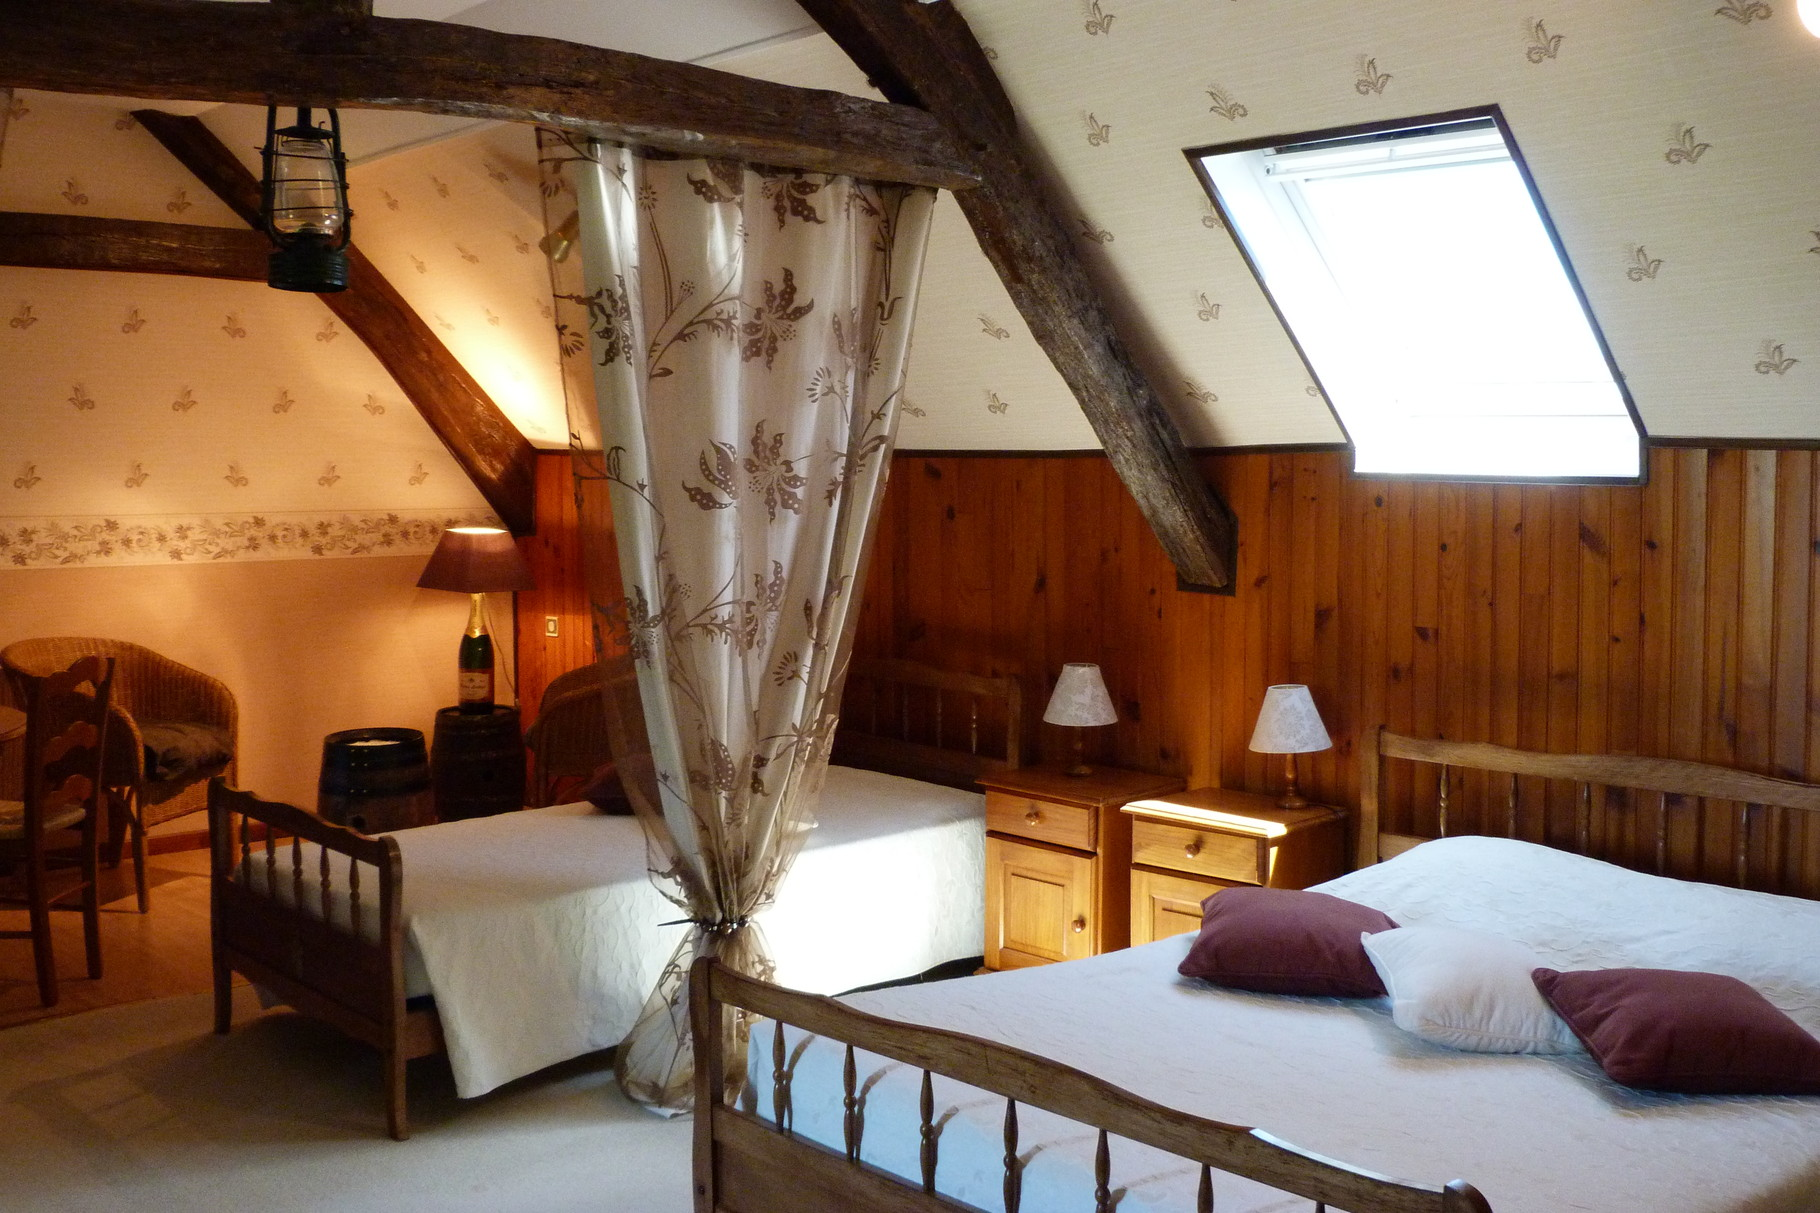 Les chambres chambres hotes champagne chambre hote champagne